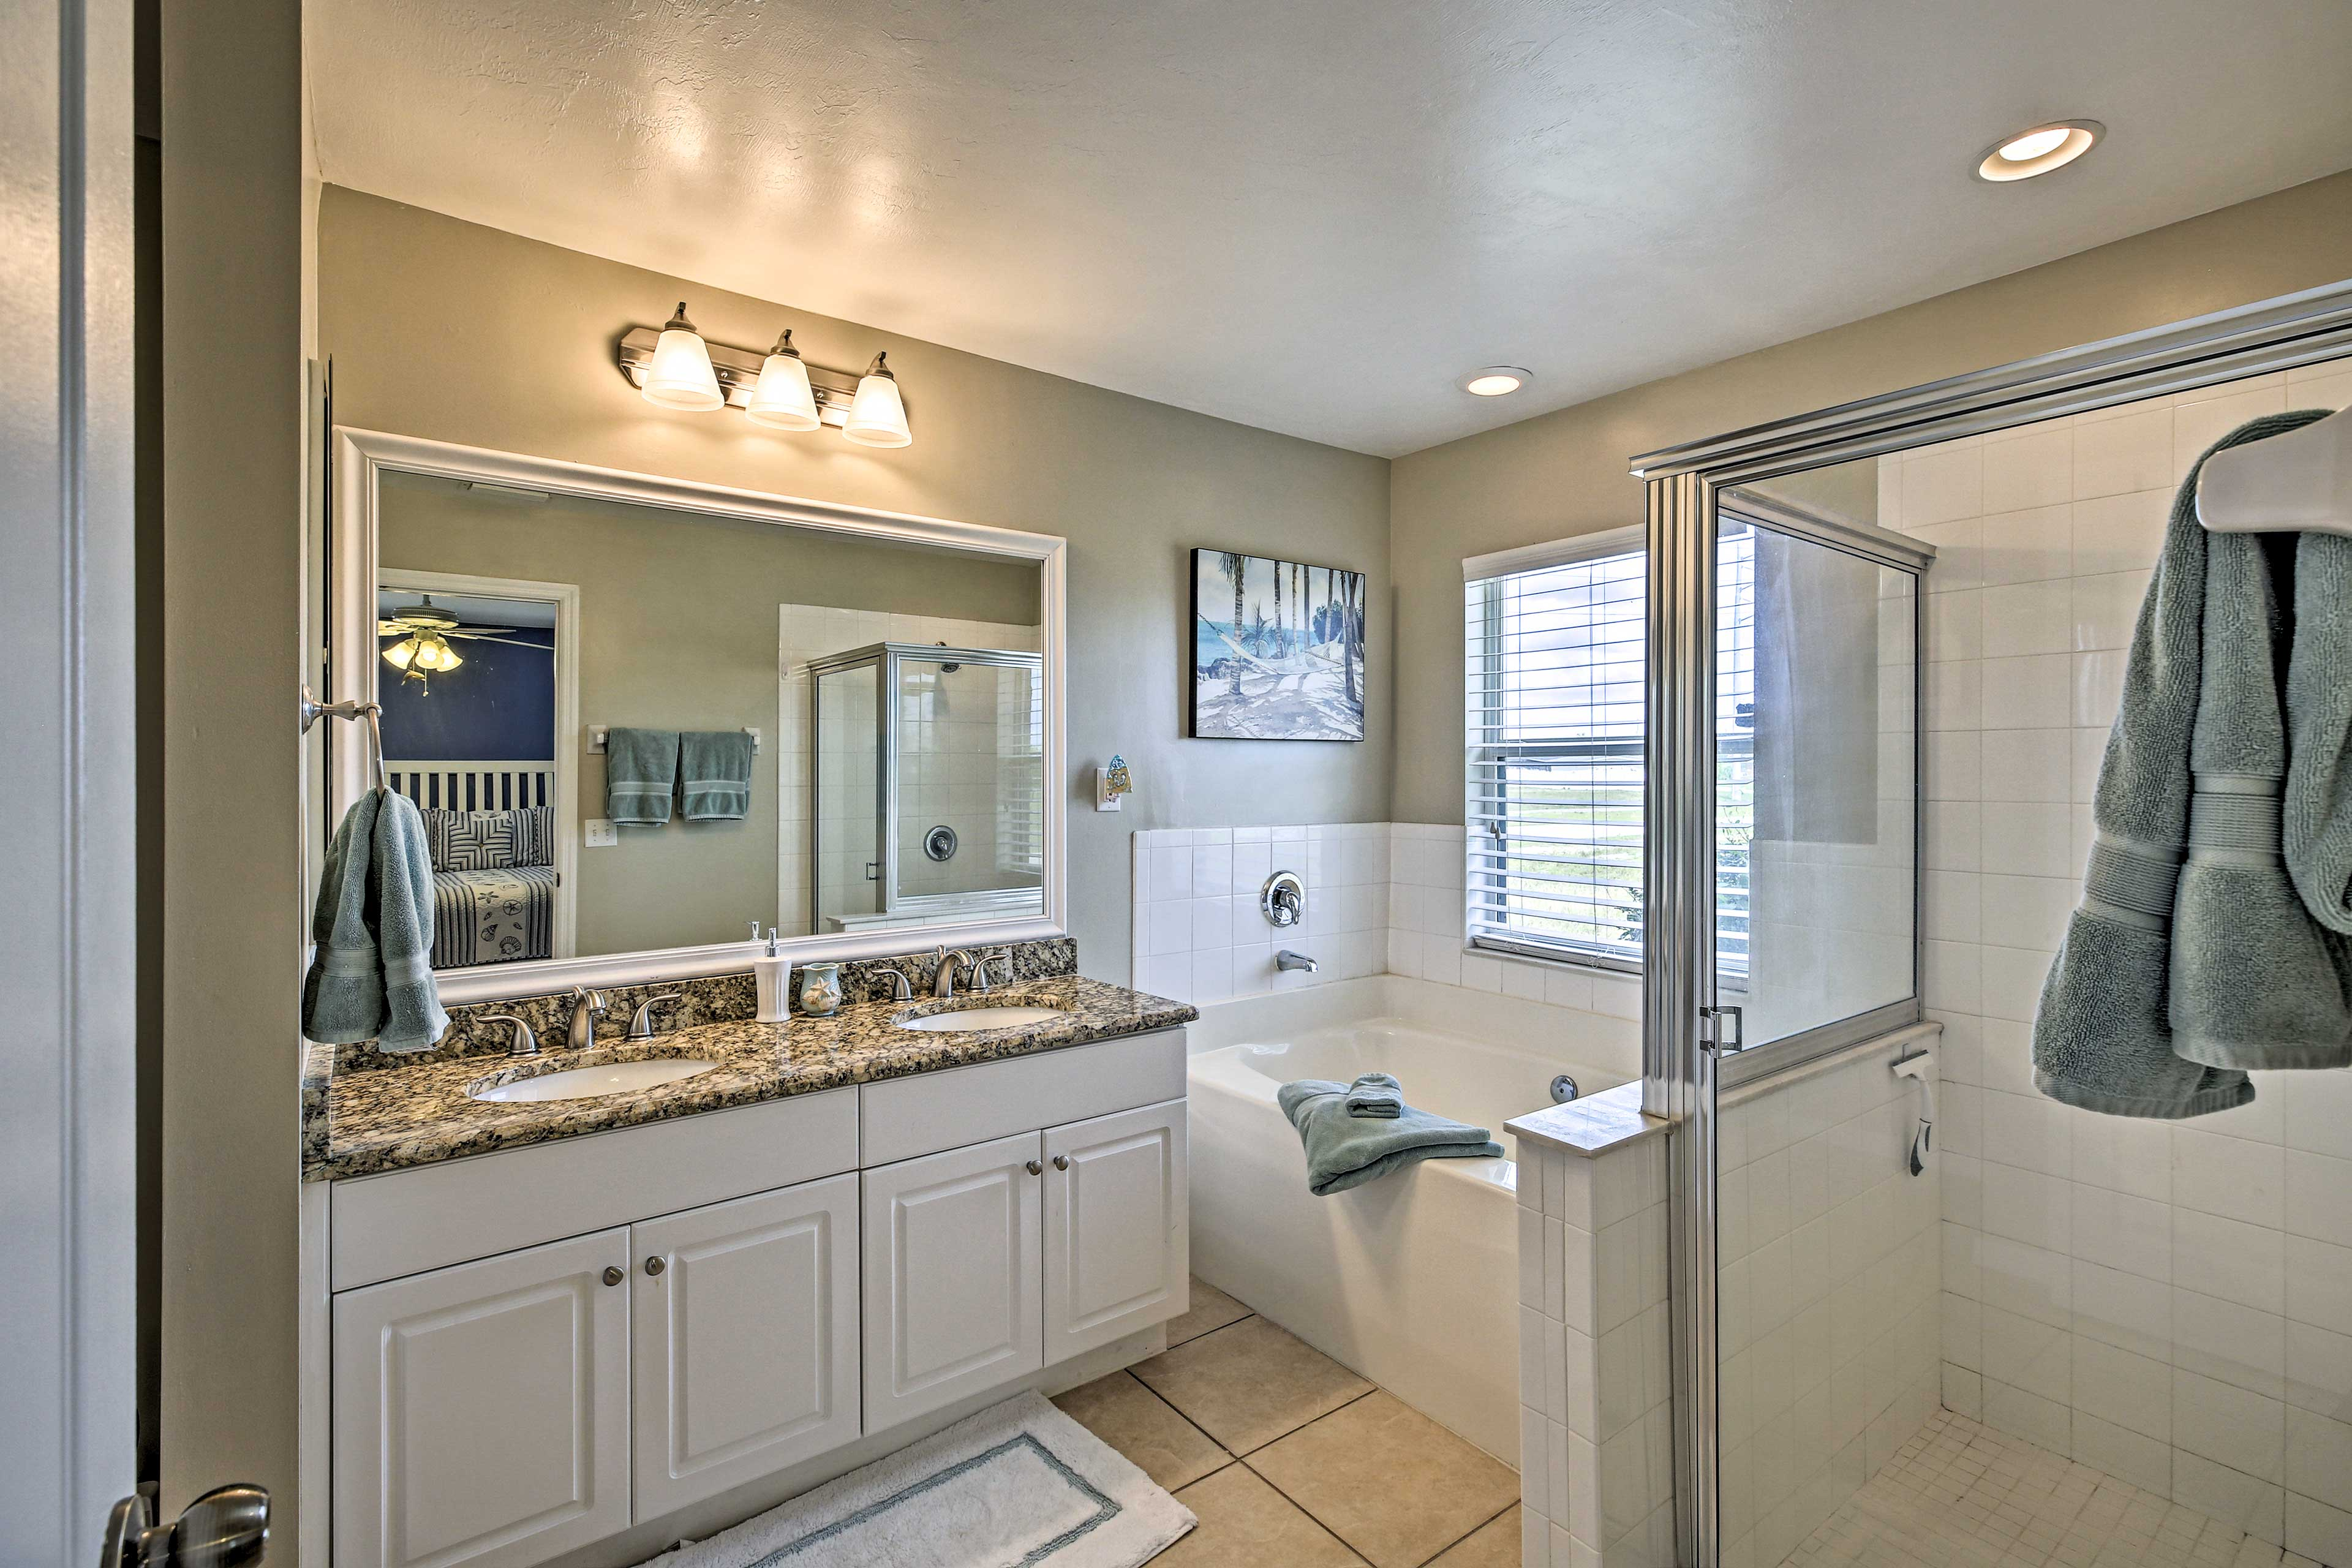 The en-suite bathroom has a walk-in shower and soaking tub.